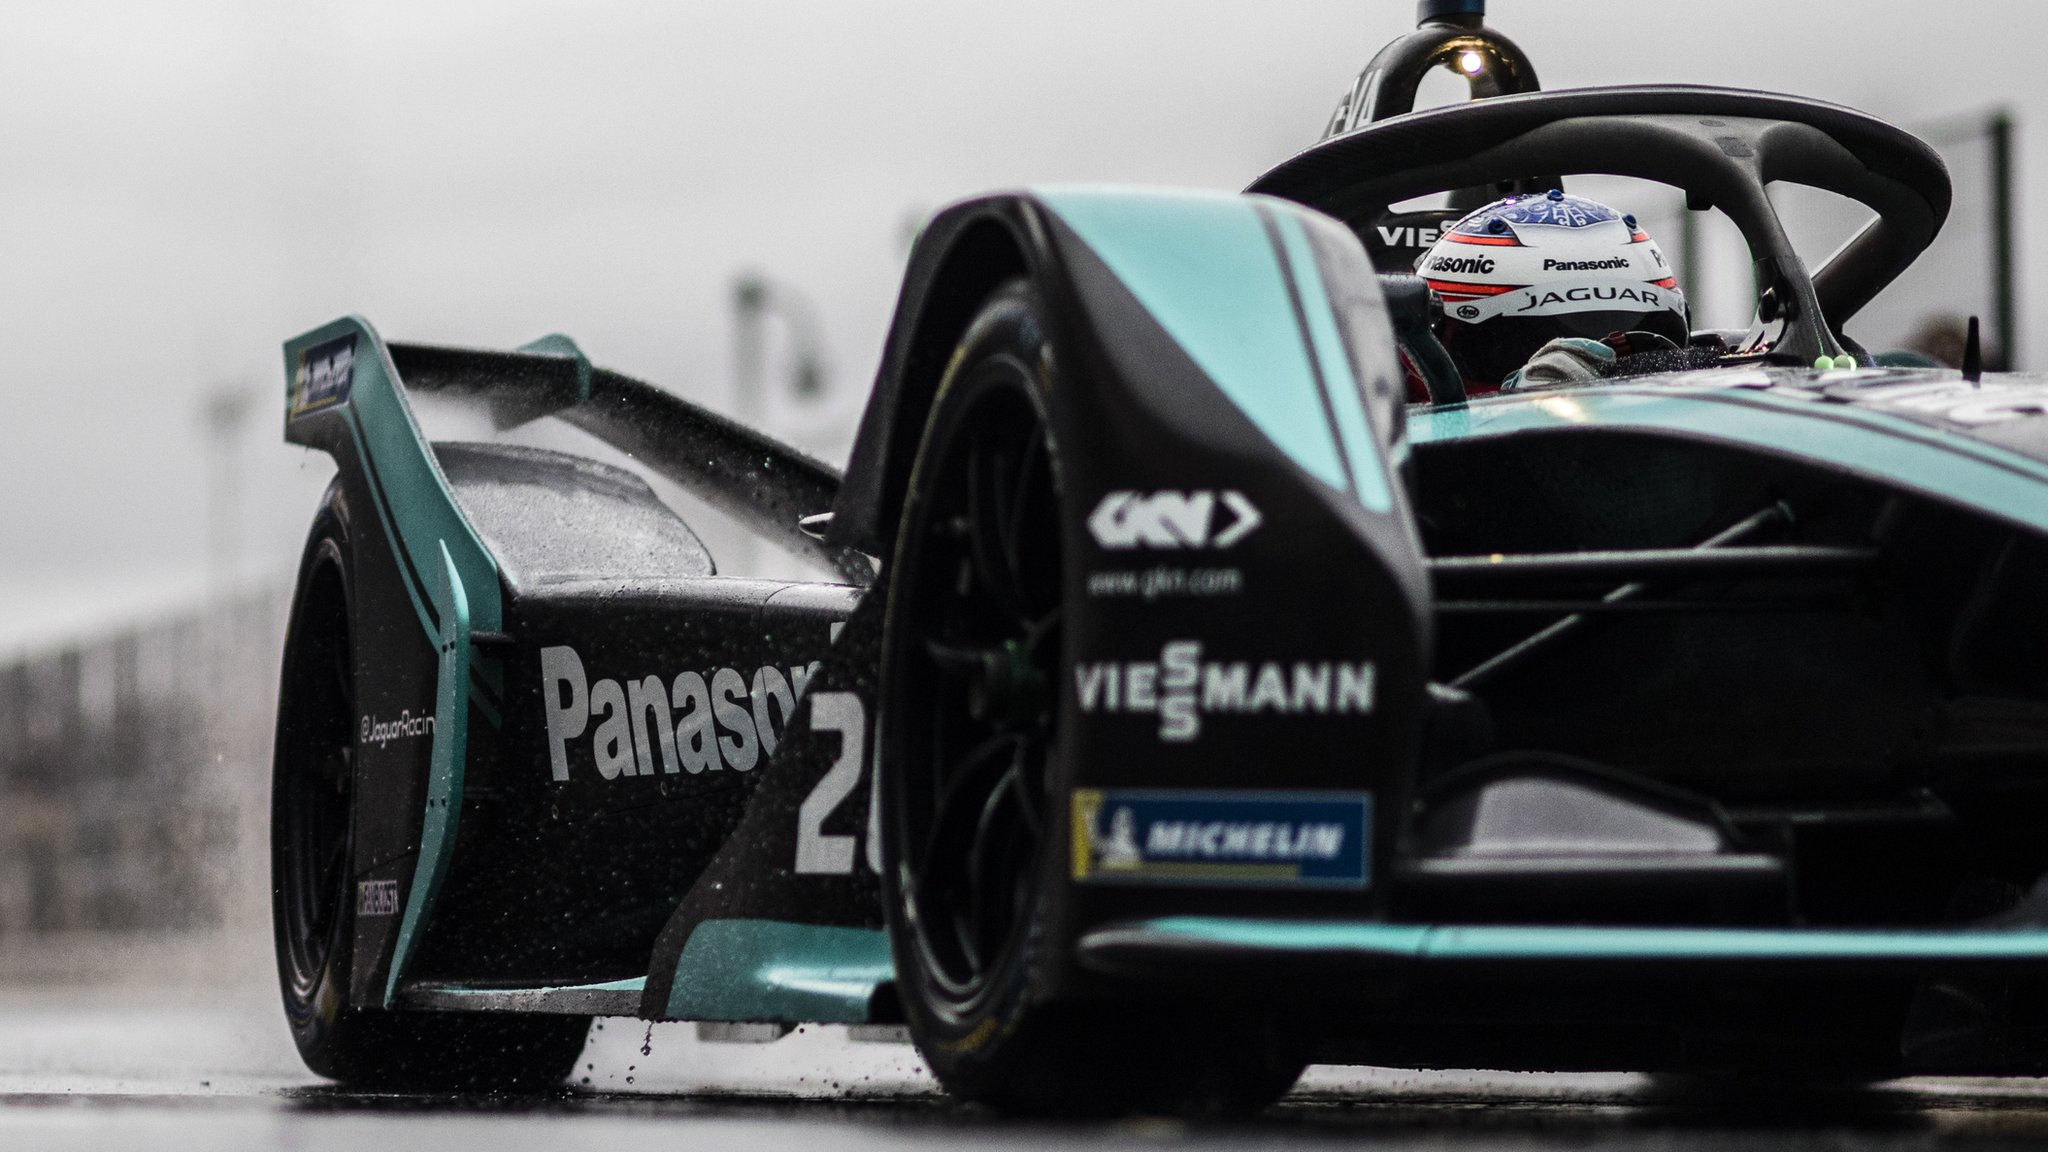 http://c.files.bbci.co.uk/70F8/production/_104402982_formulae_getty.jpg